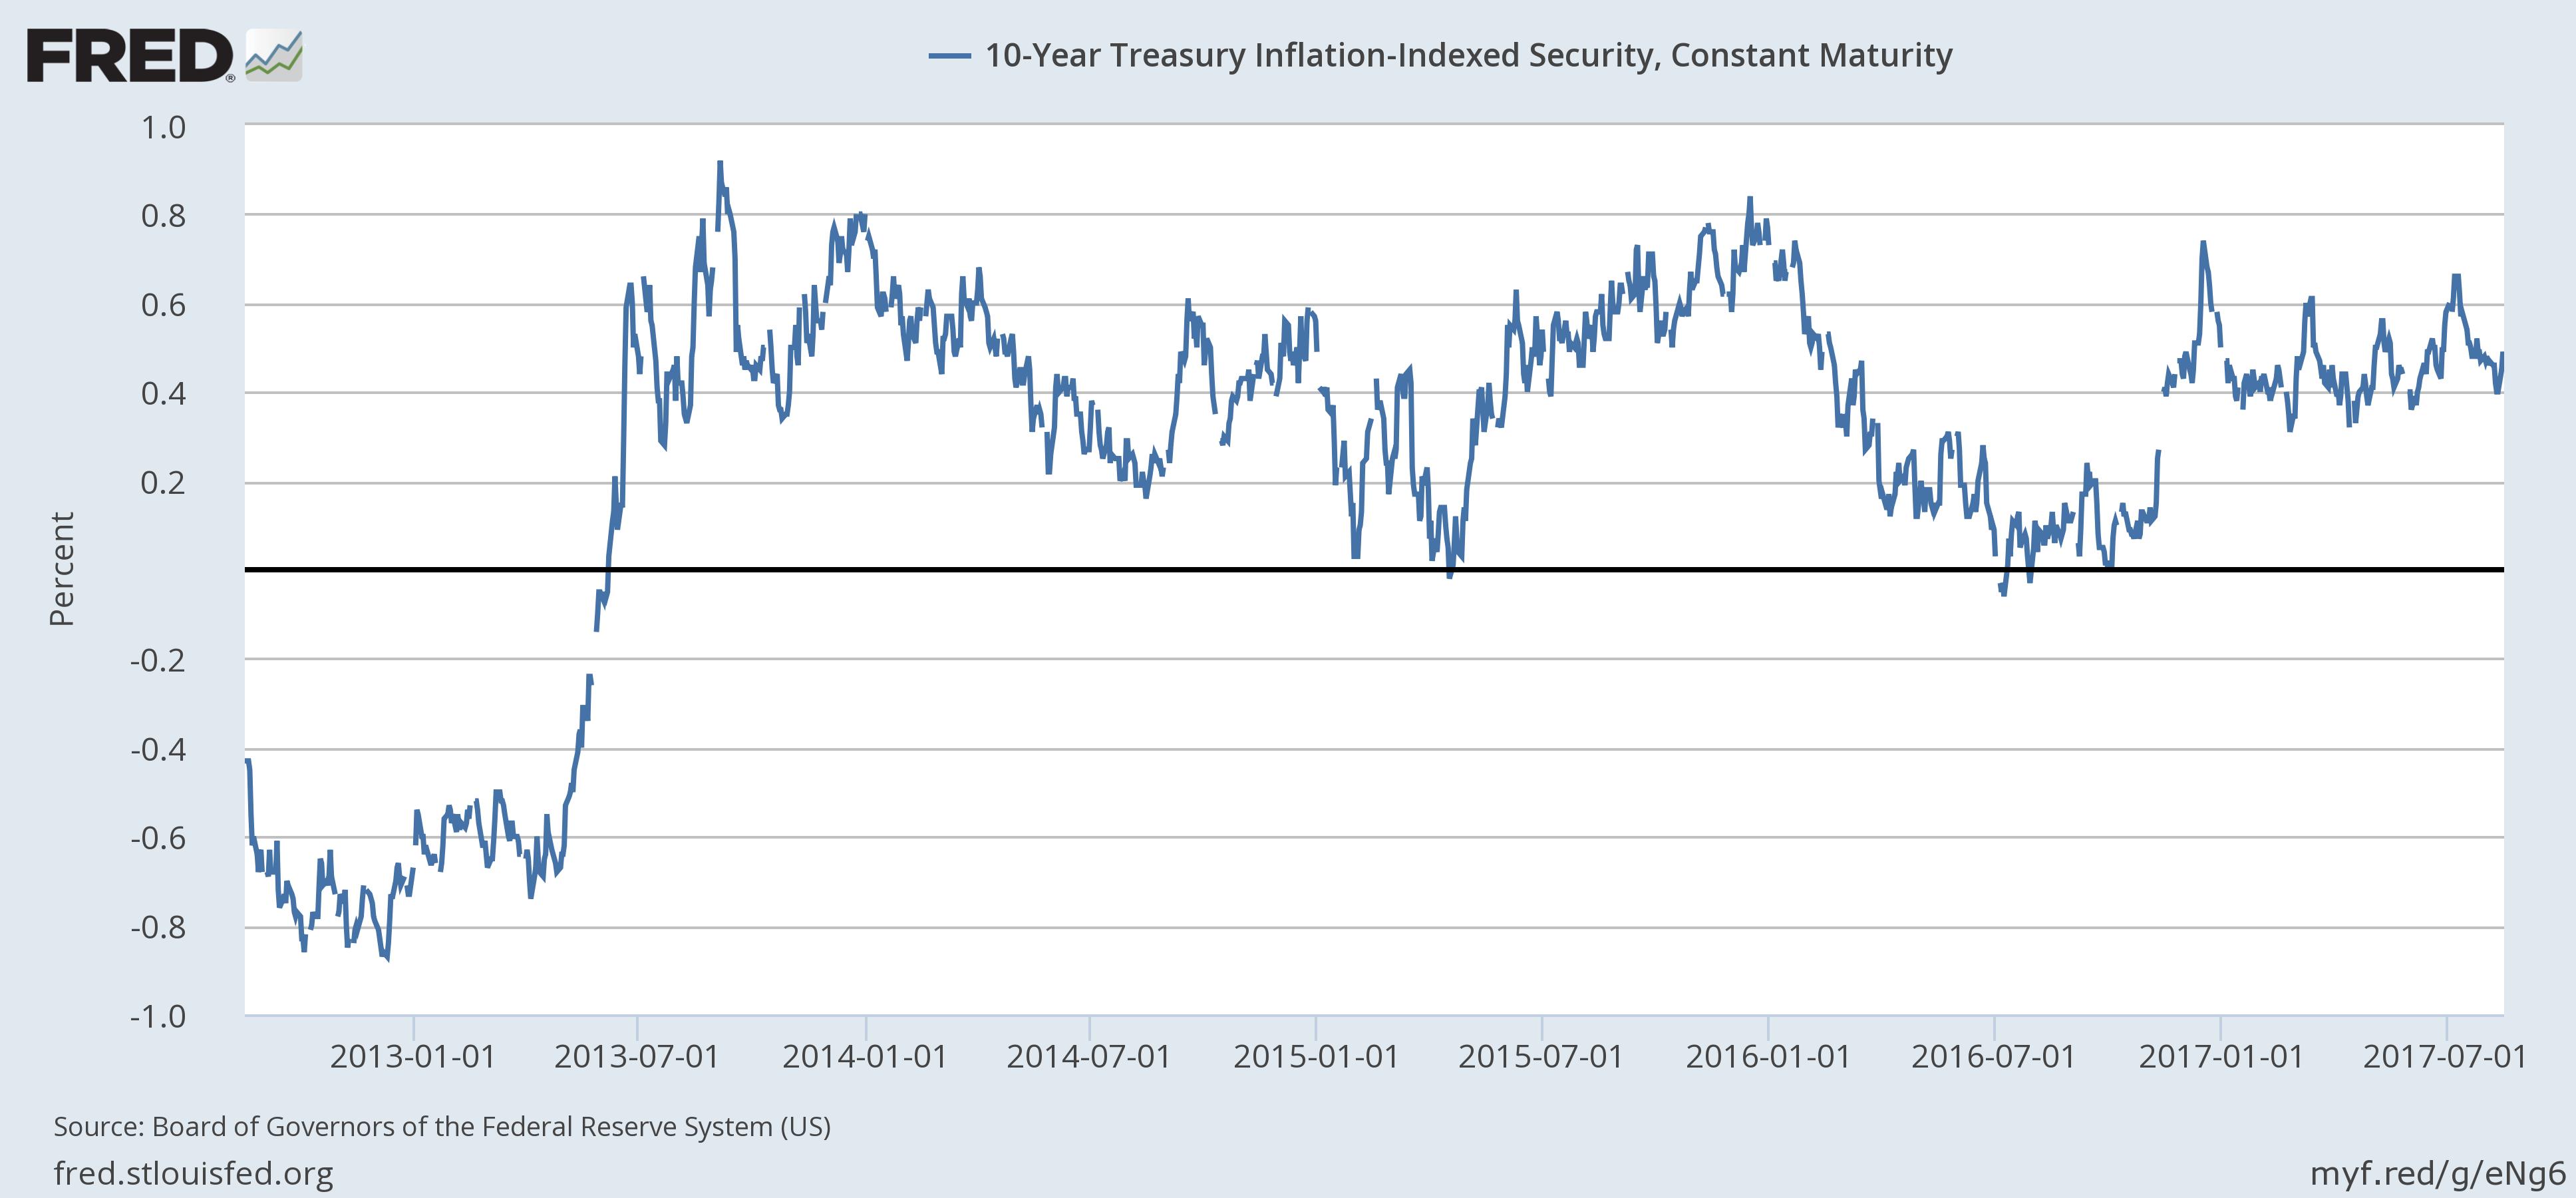 U.S. 10 Year Treasury Inflation - Indexed Security, Jan 2013- 2017